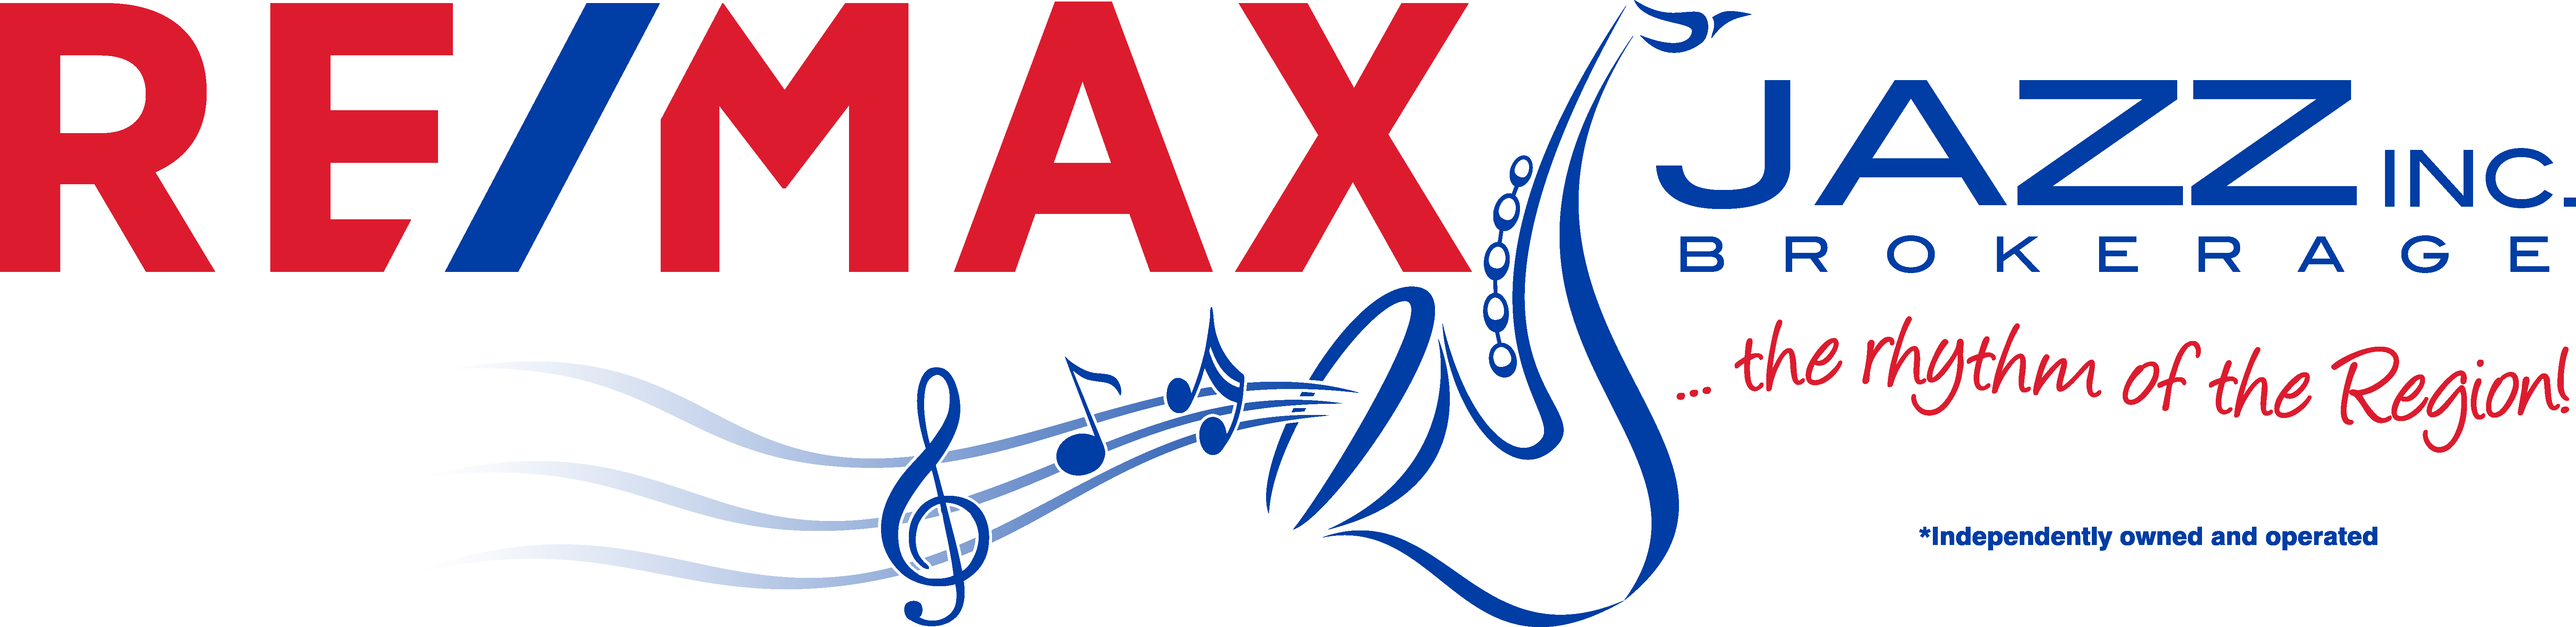 RE/MAX Jazz Inc., Brokerage *